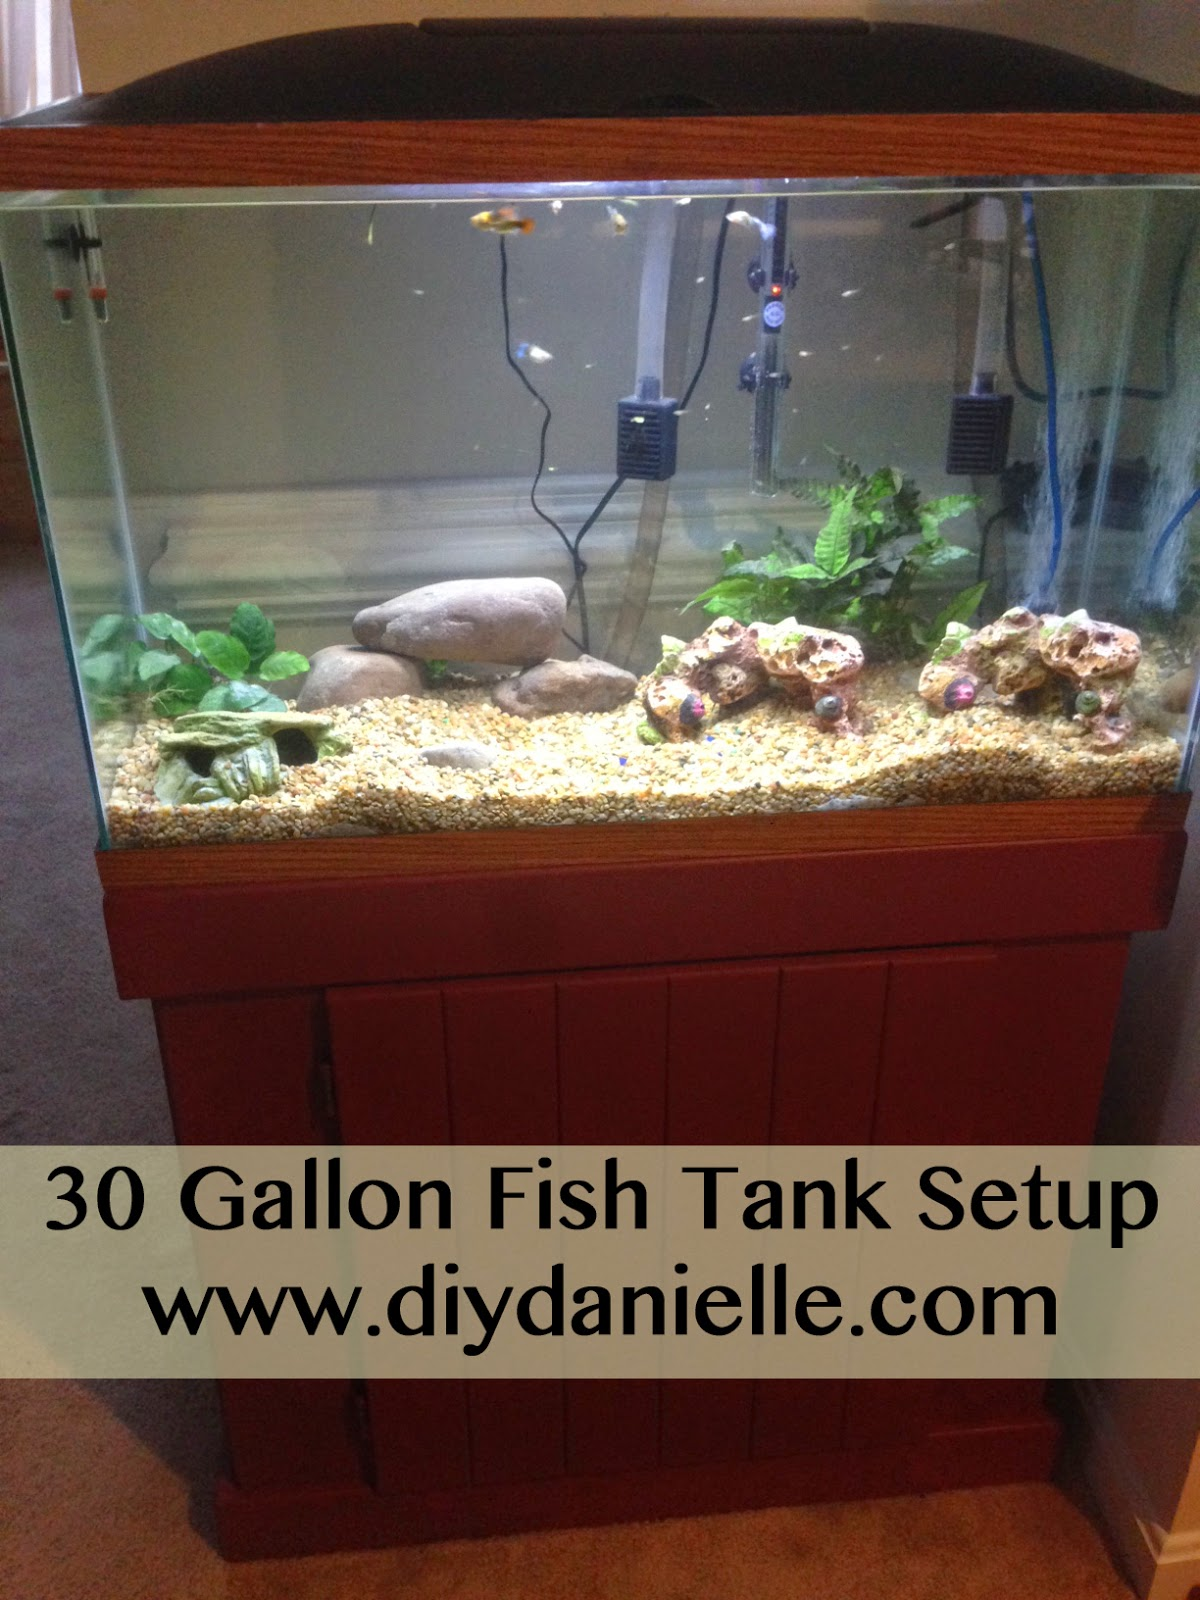 30 gallon fish tank setup diy danielle for How many fish in a 20 gallon tank